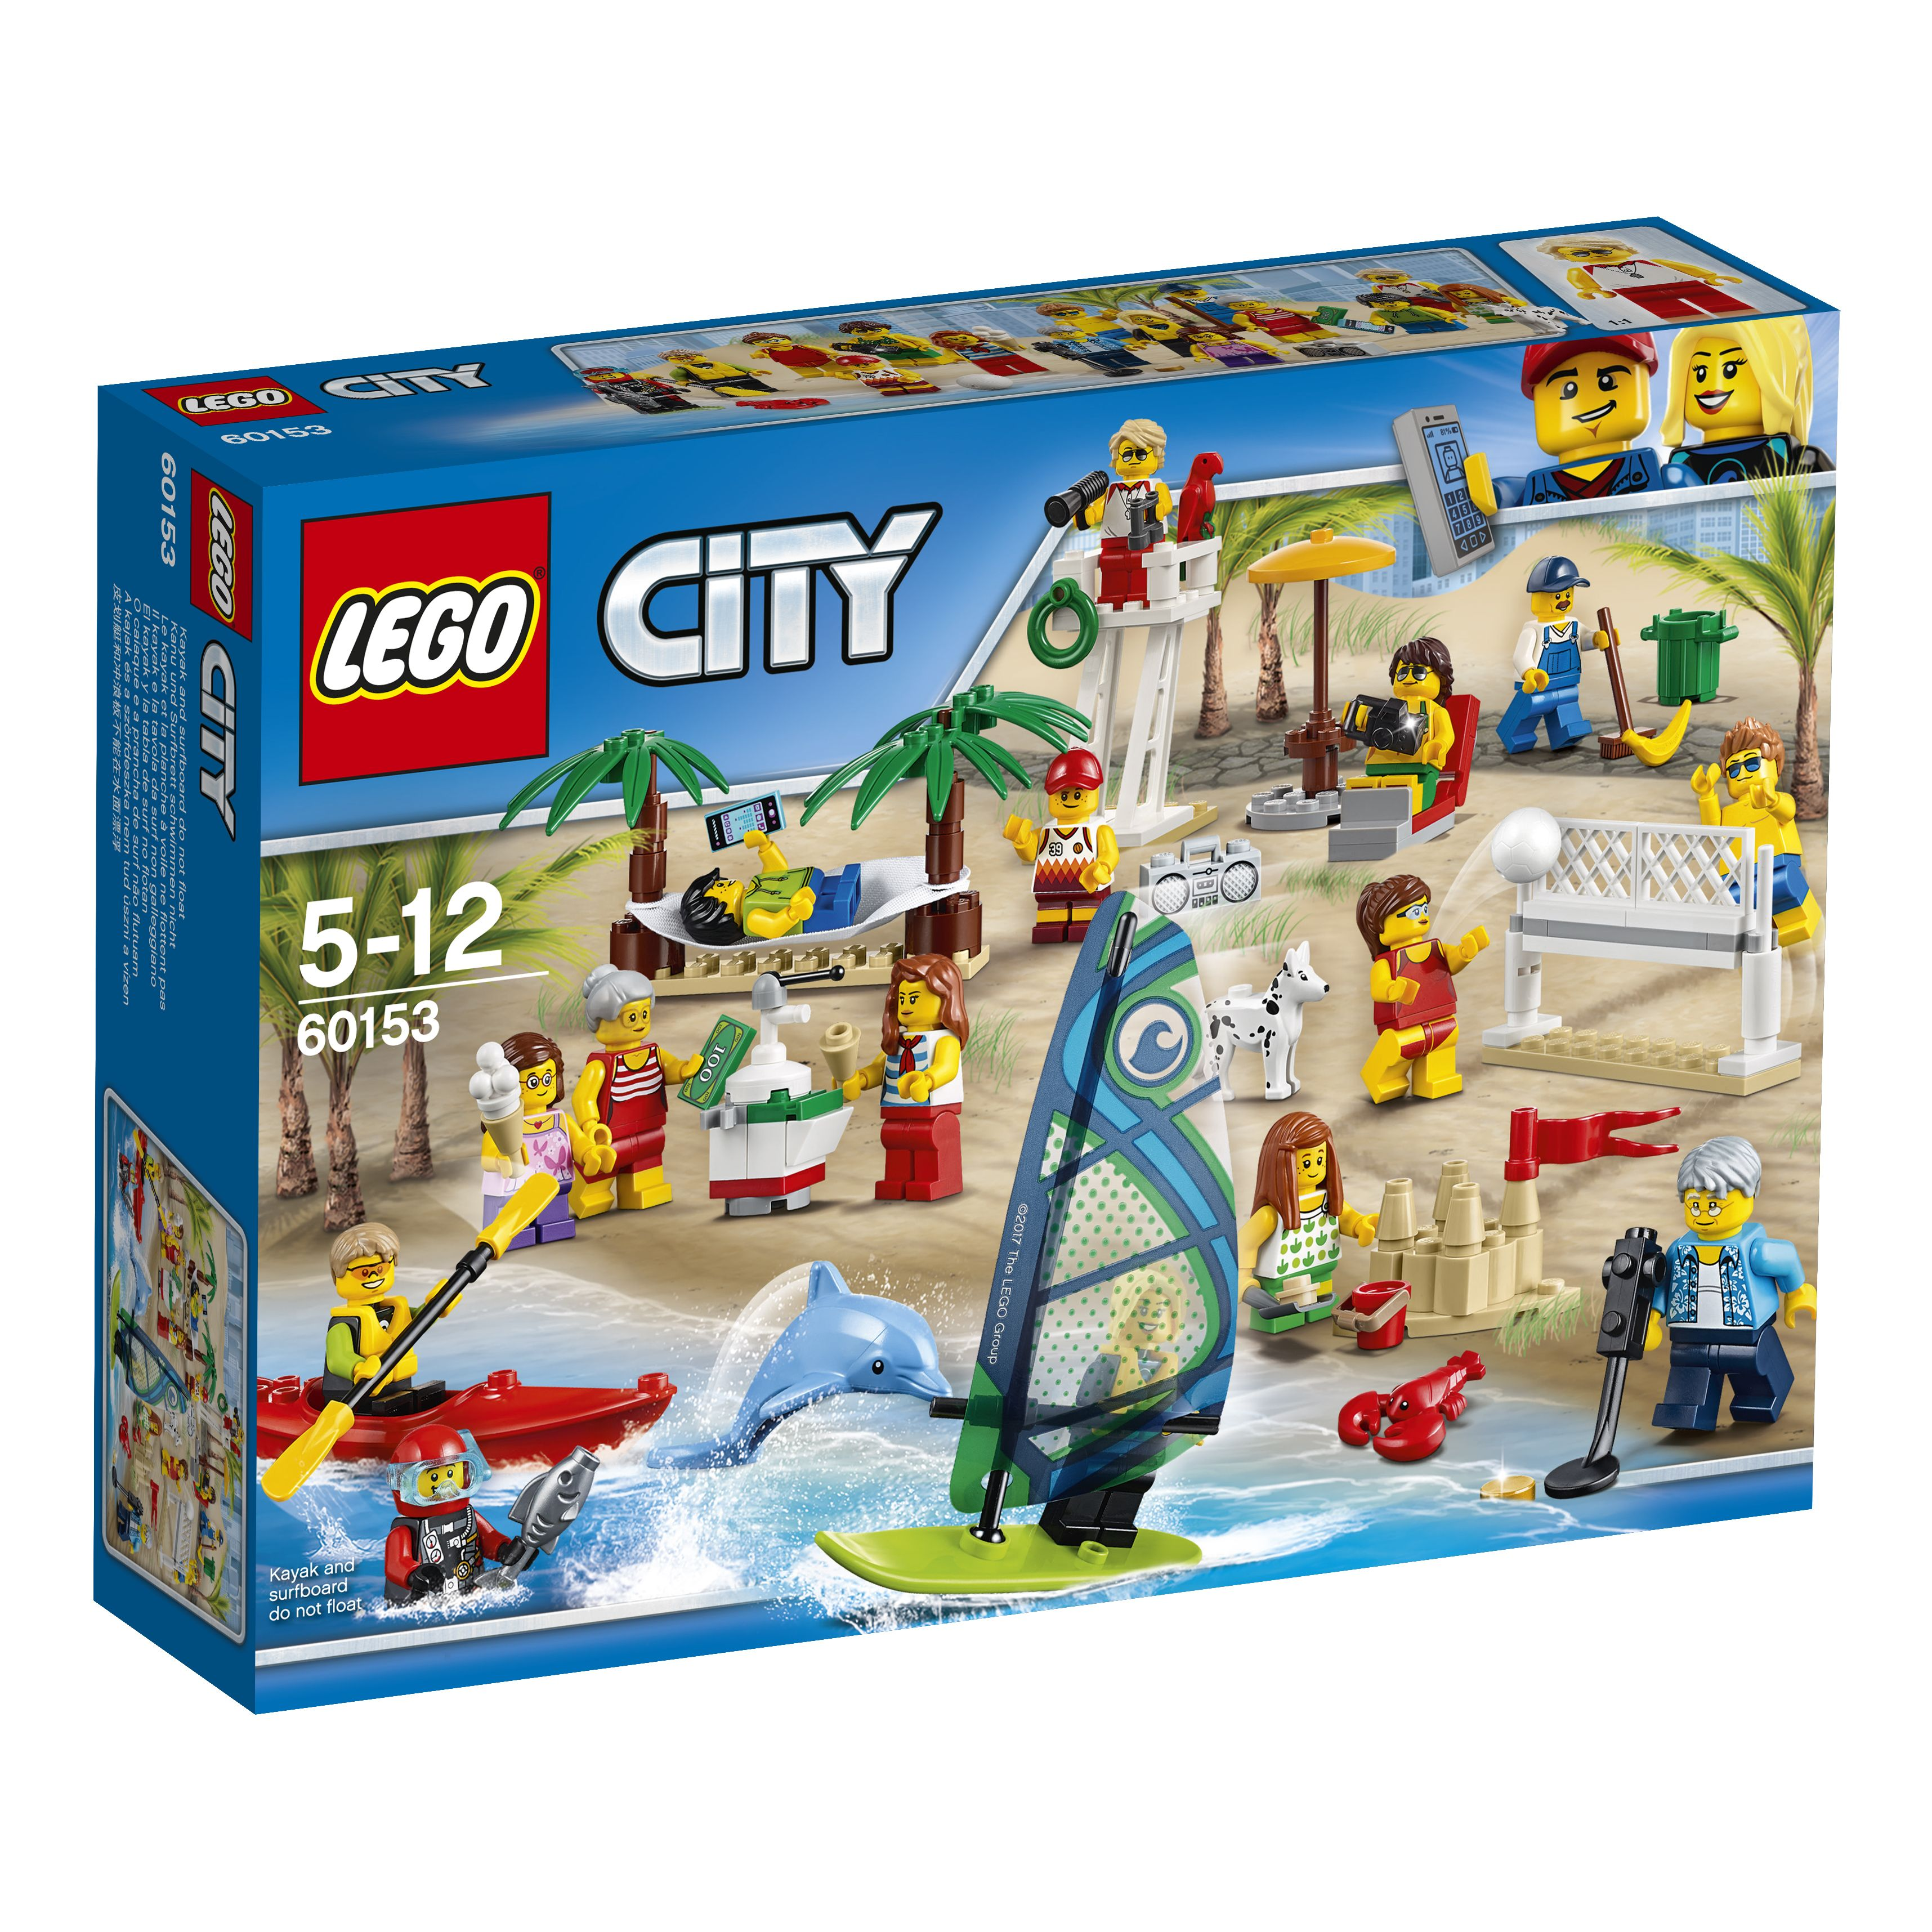 Pin lego 60032 city the lego summer wave in official images on -  Lego Lego 60153 Lego City Stadtbewohner Ein Tag Am Strand Alter